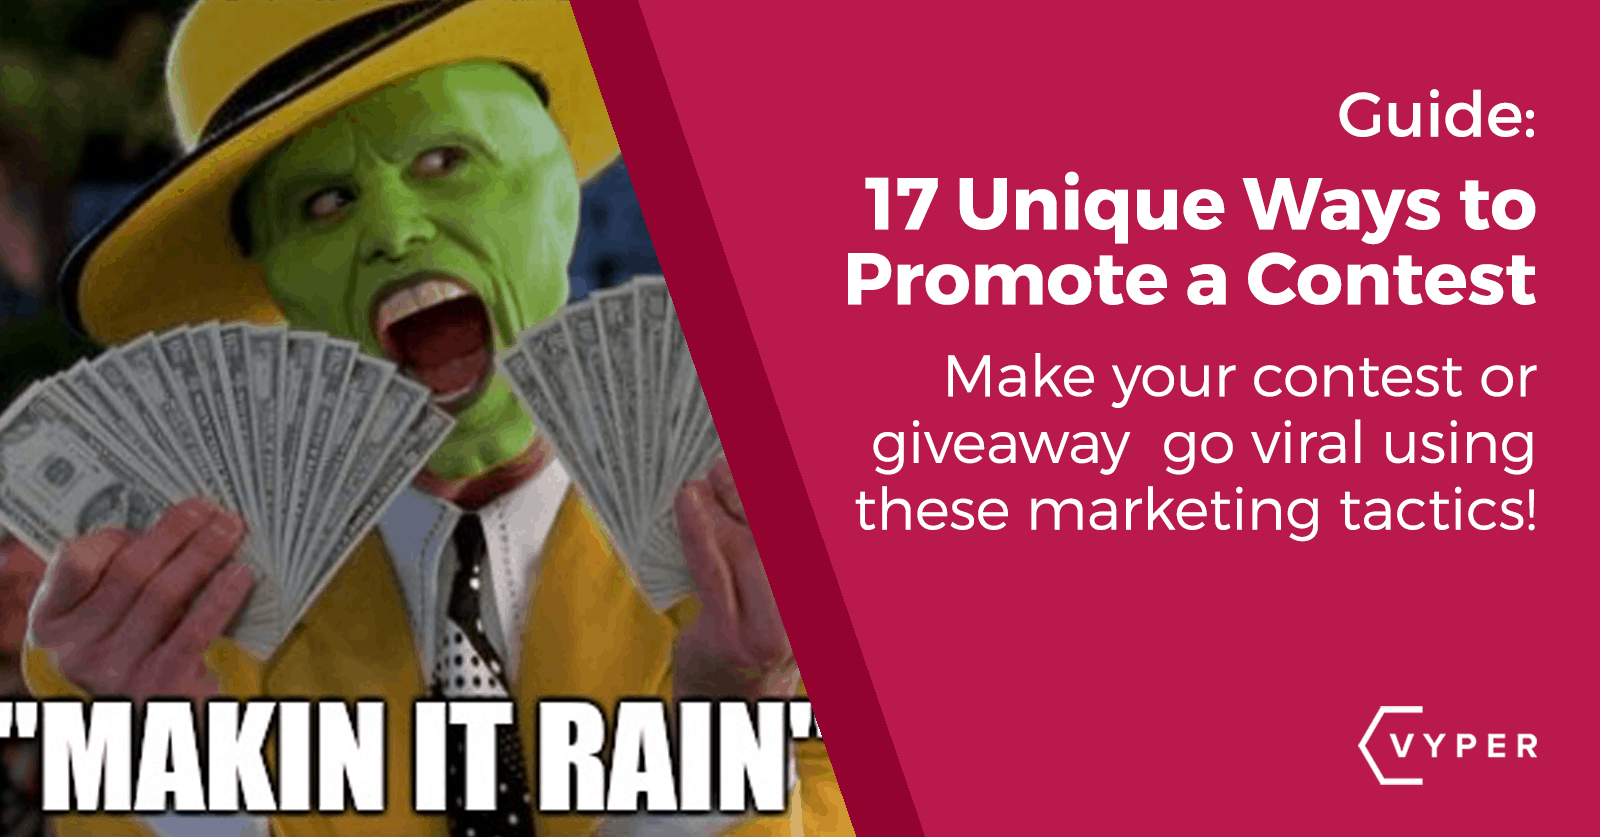 17 Unique Ways to Promote Contests & Giveaways